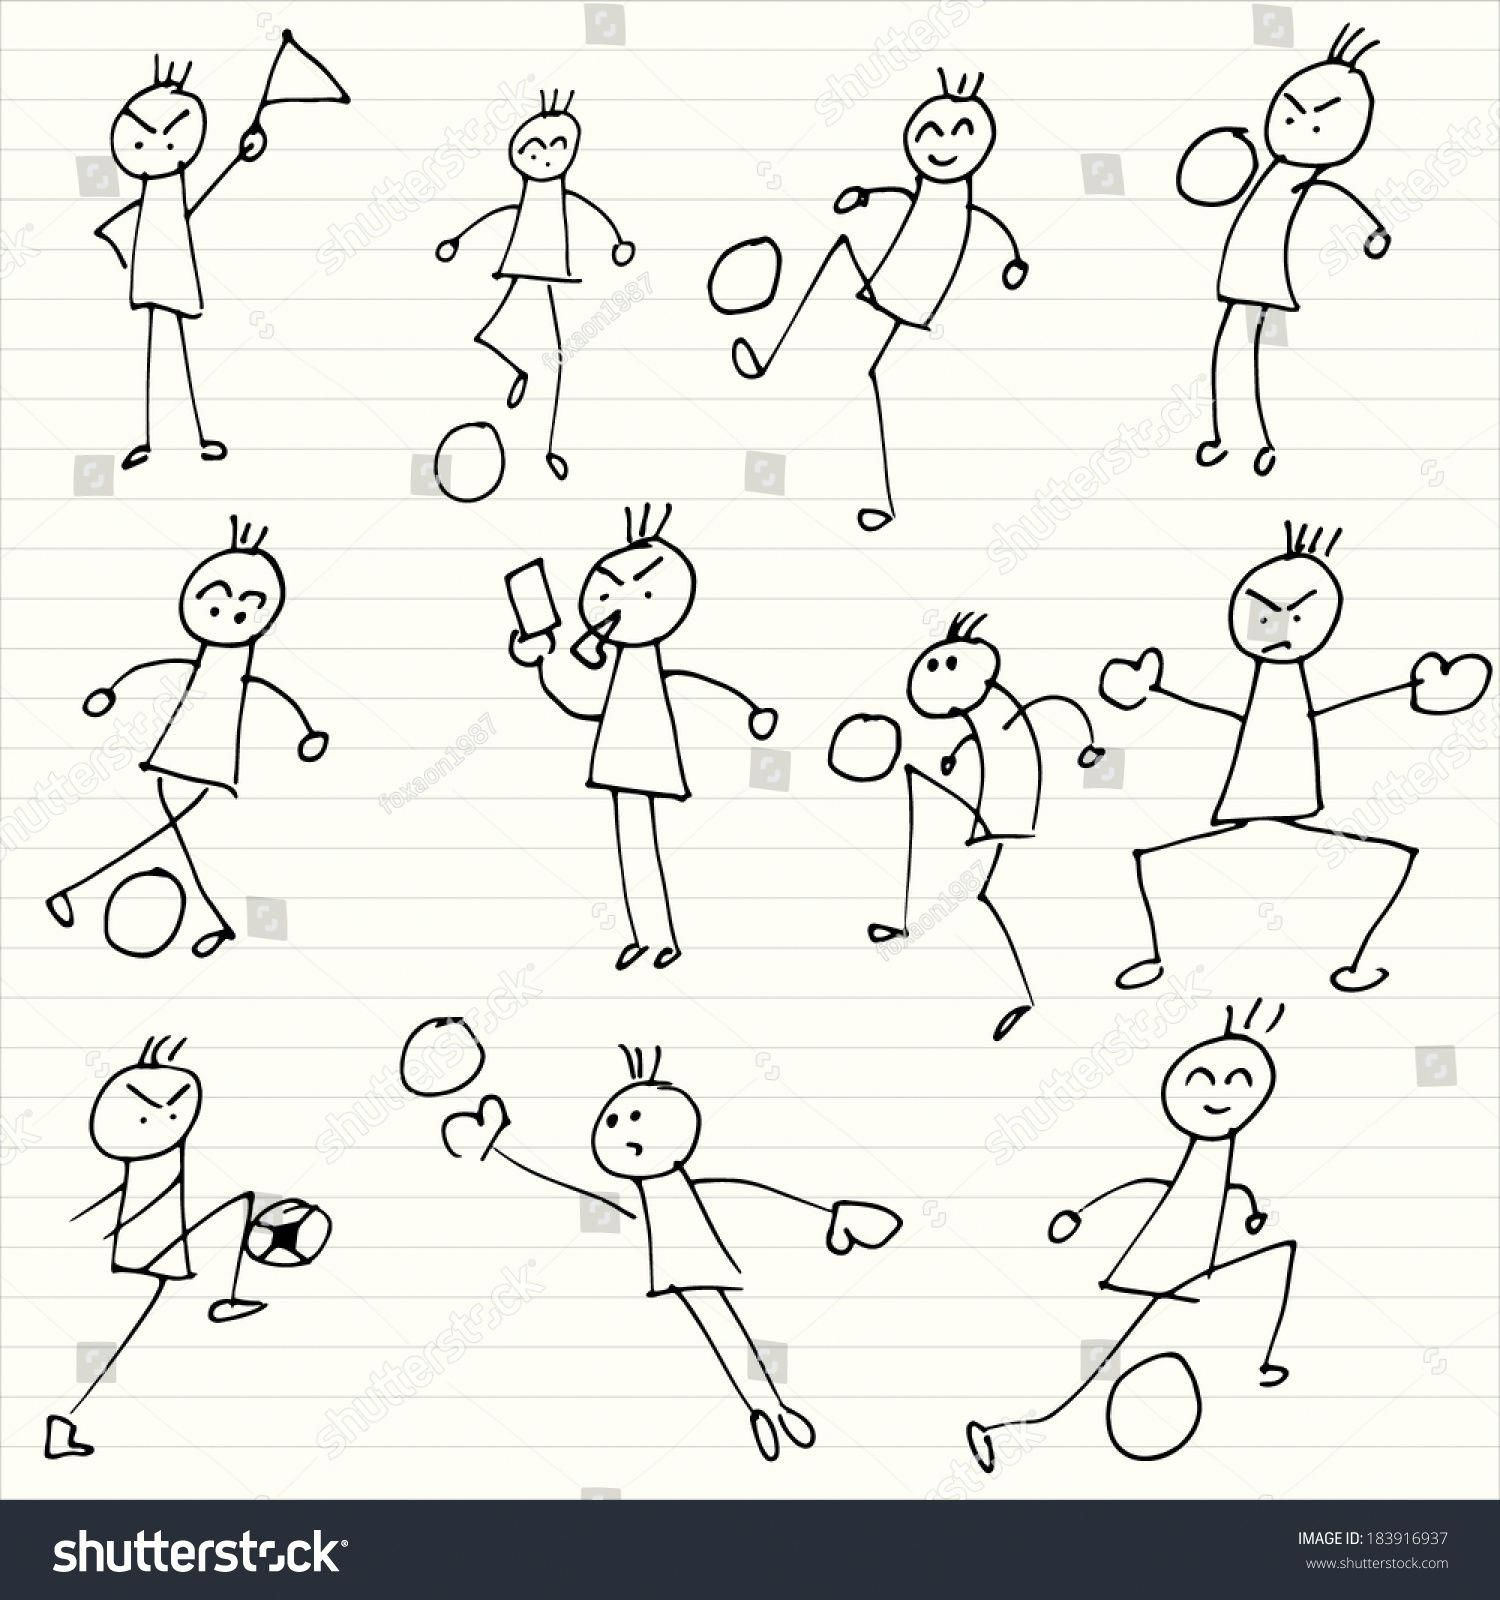 Kids Playing Soccer Doodles Kids Playing Football Doodle Doodle Play